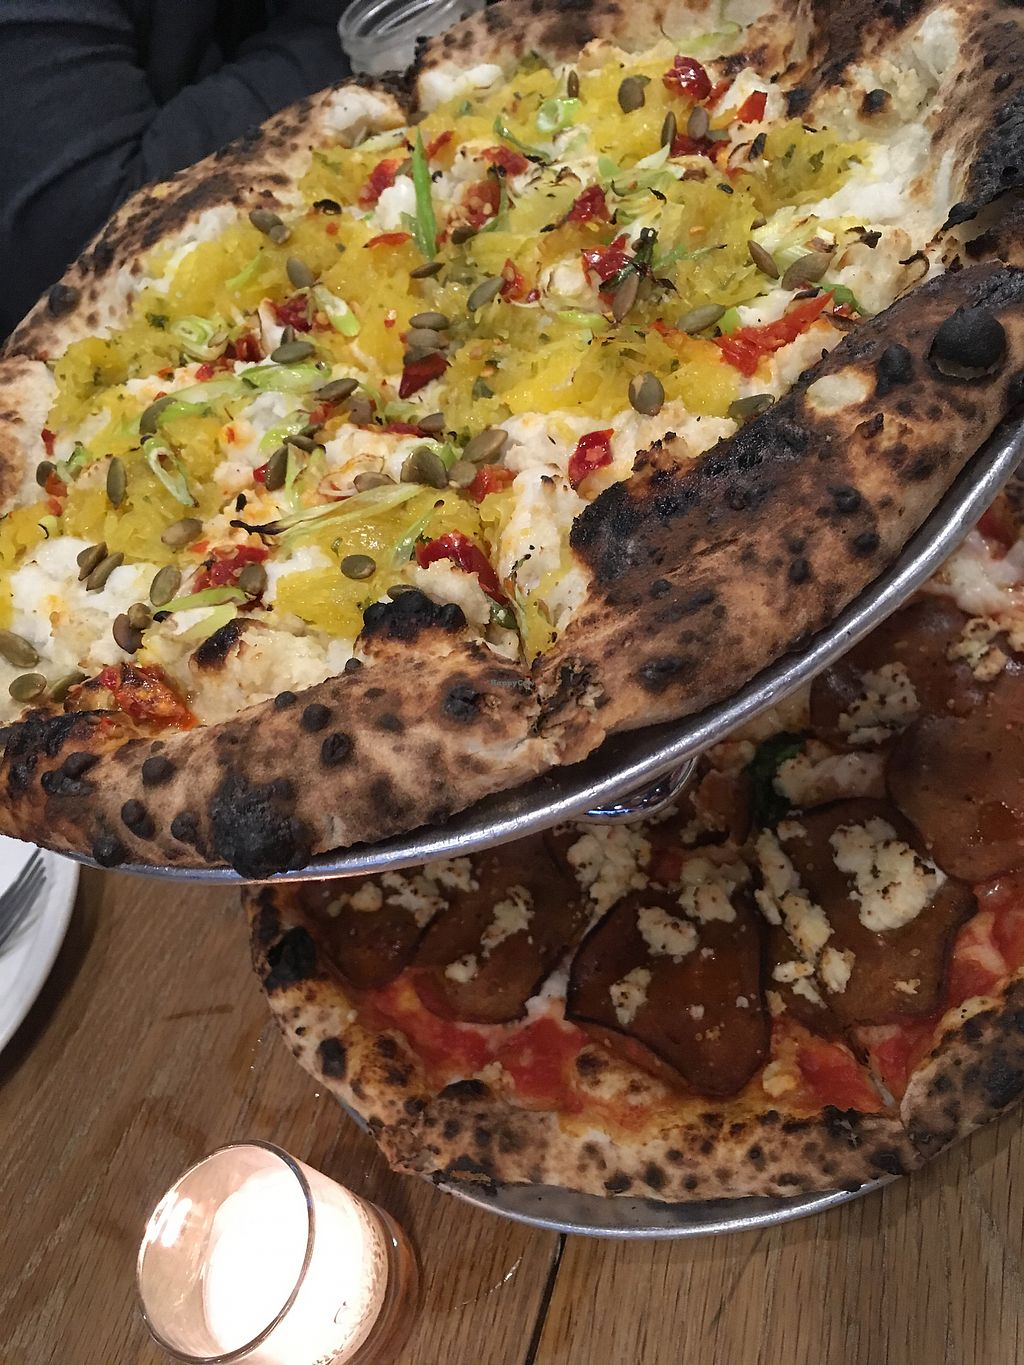 """Photo of Talula's Pizza  by <a href=""""/members/profile/Isamara"""">Isamara</a> <br/>Top: spaghetti squash. Bottom: Vegeroni <br/> October 29, 2017  - <a href='/contact/abuse/image/76216/319679'>Report</a>"""